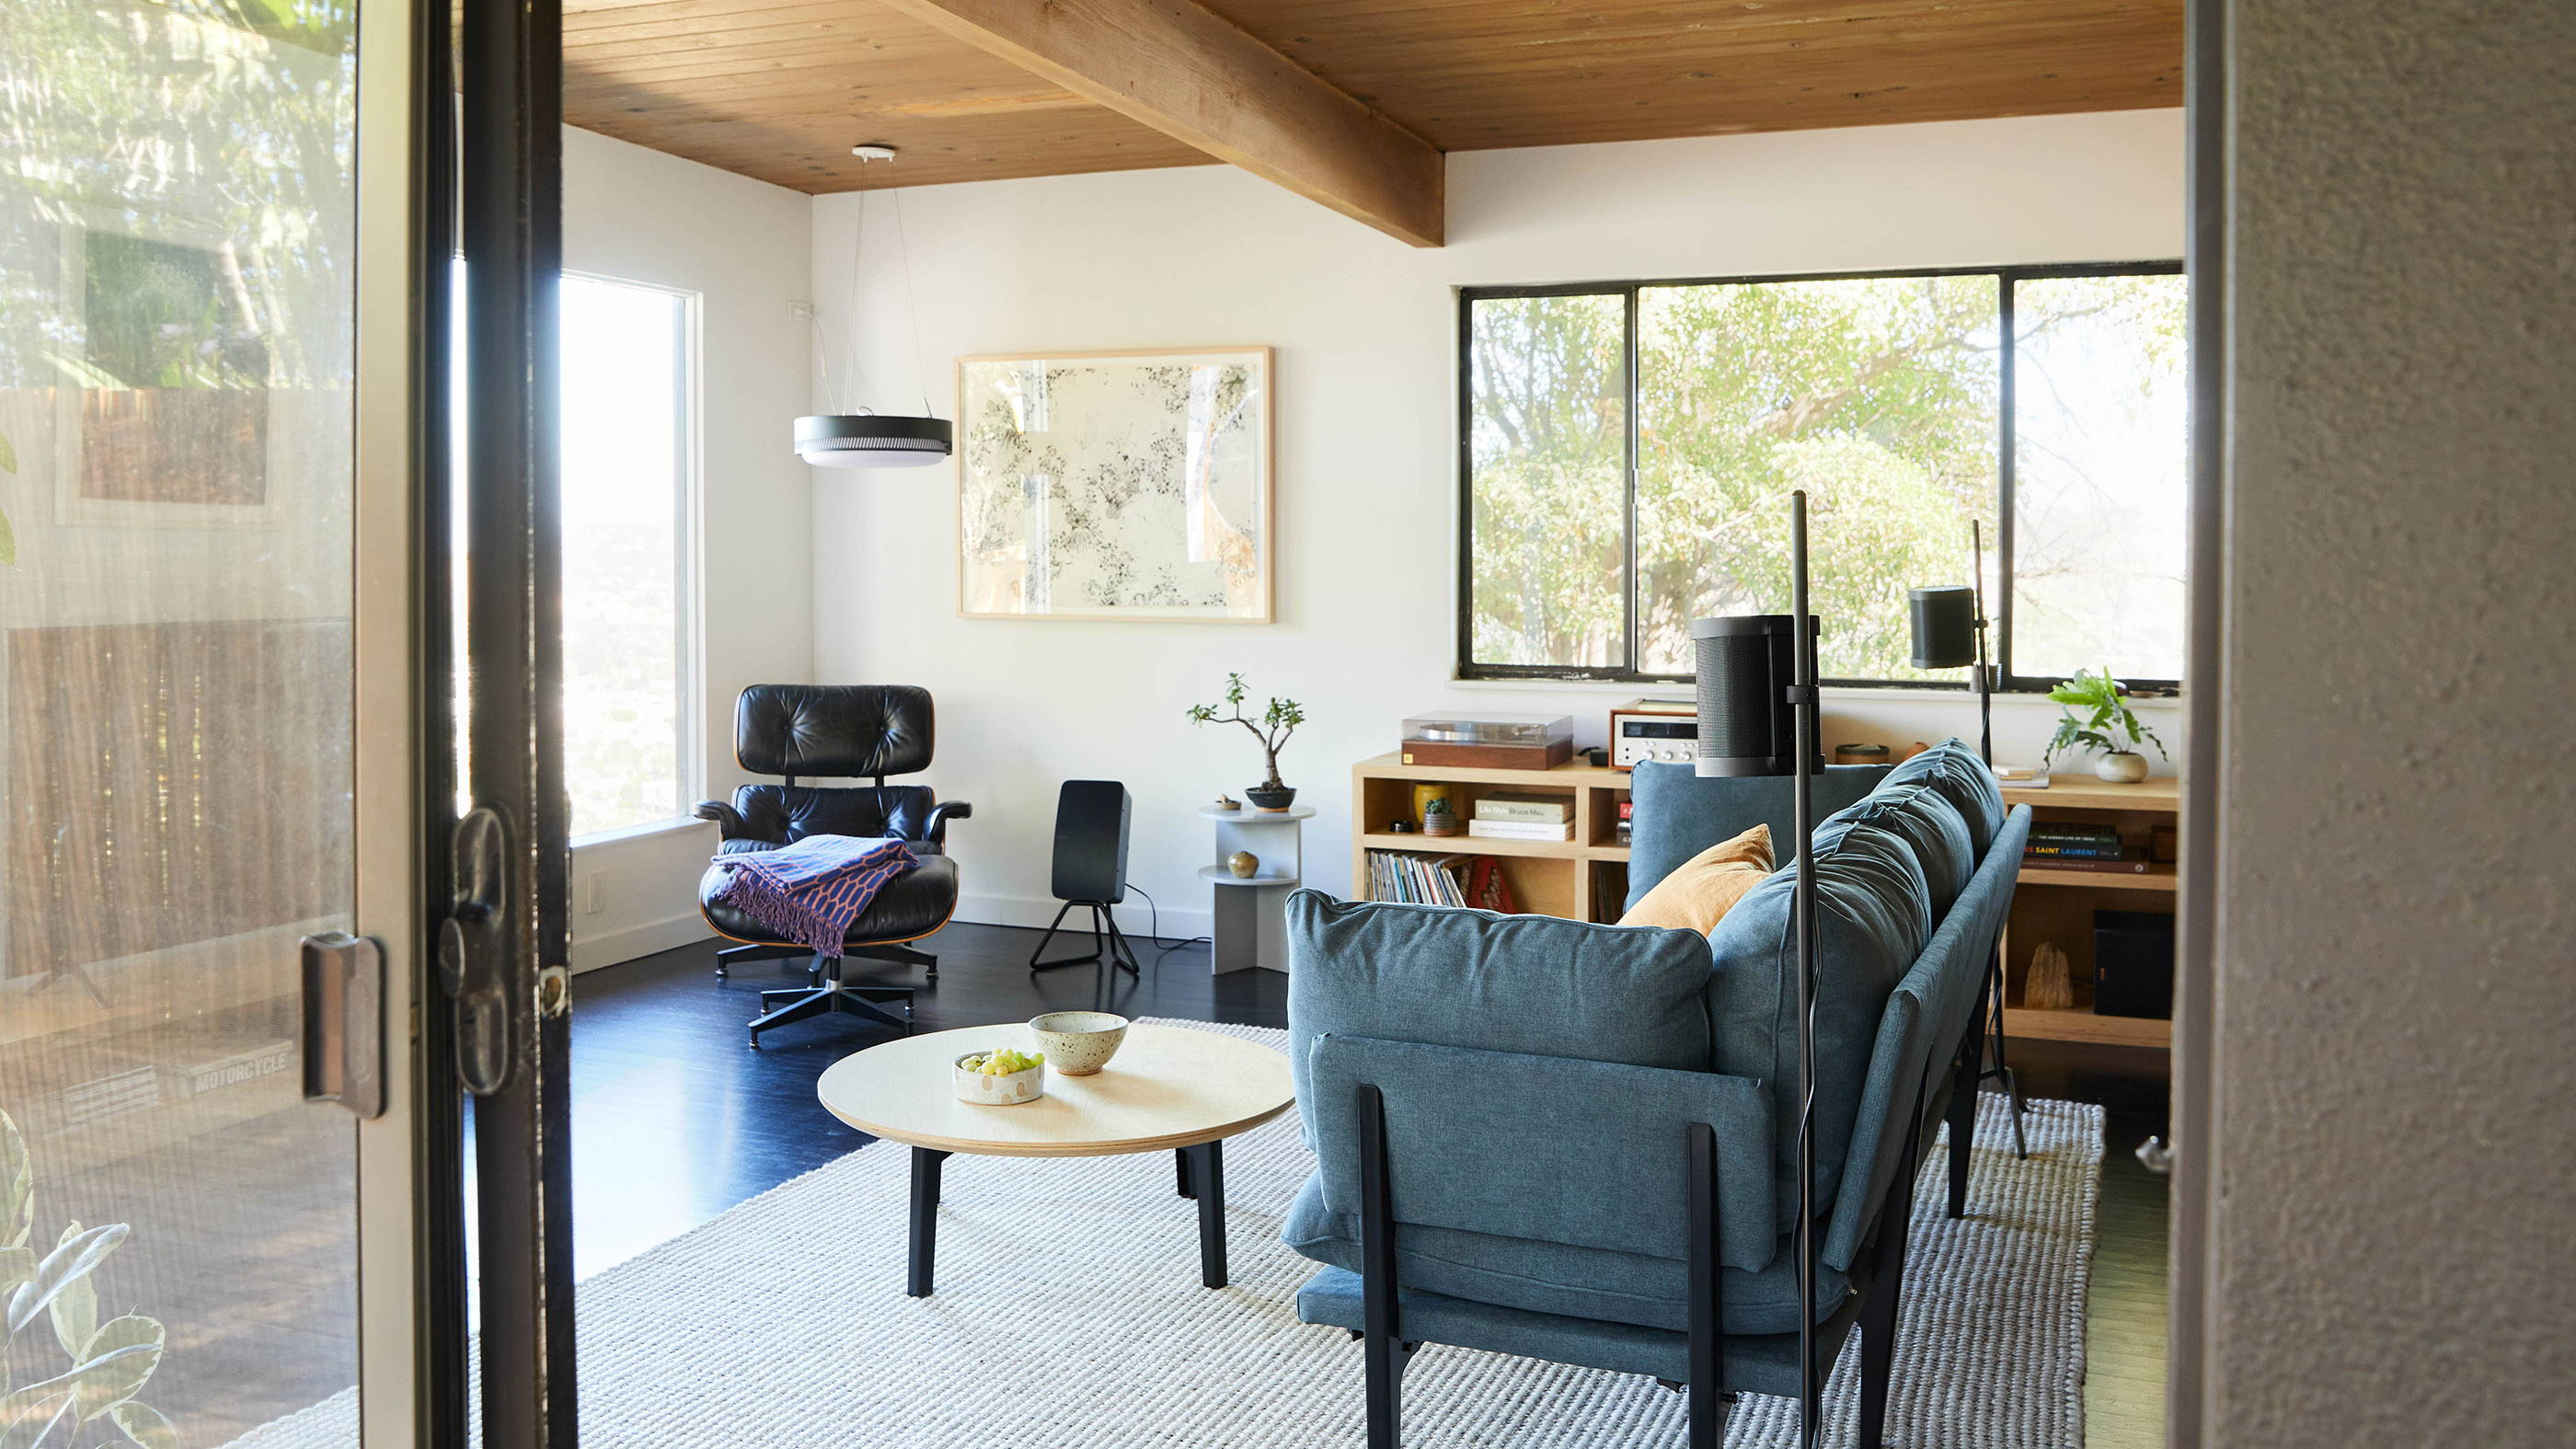 A wide view of a modern room with Floyd furniture and Sonos speakers.